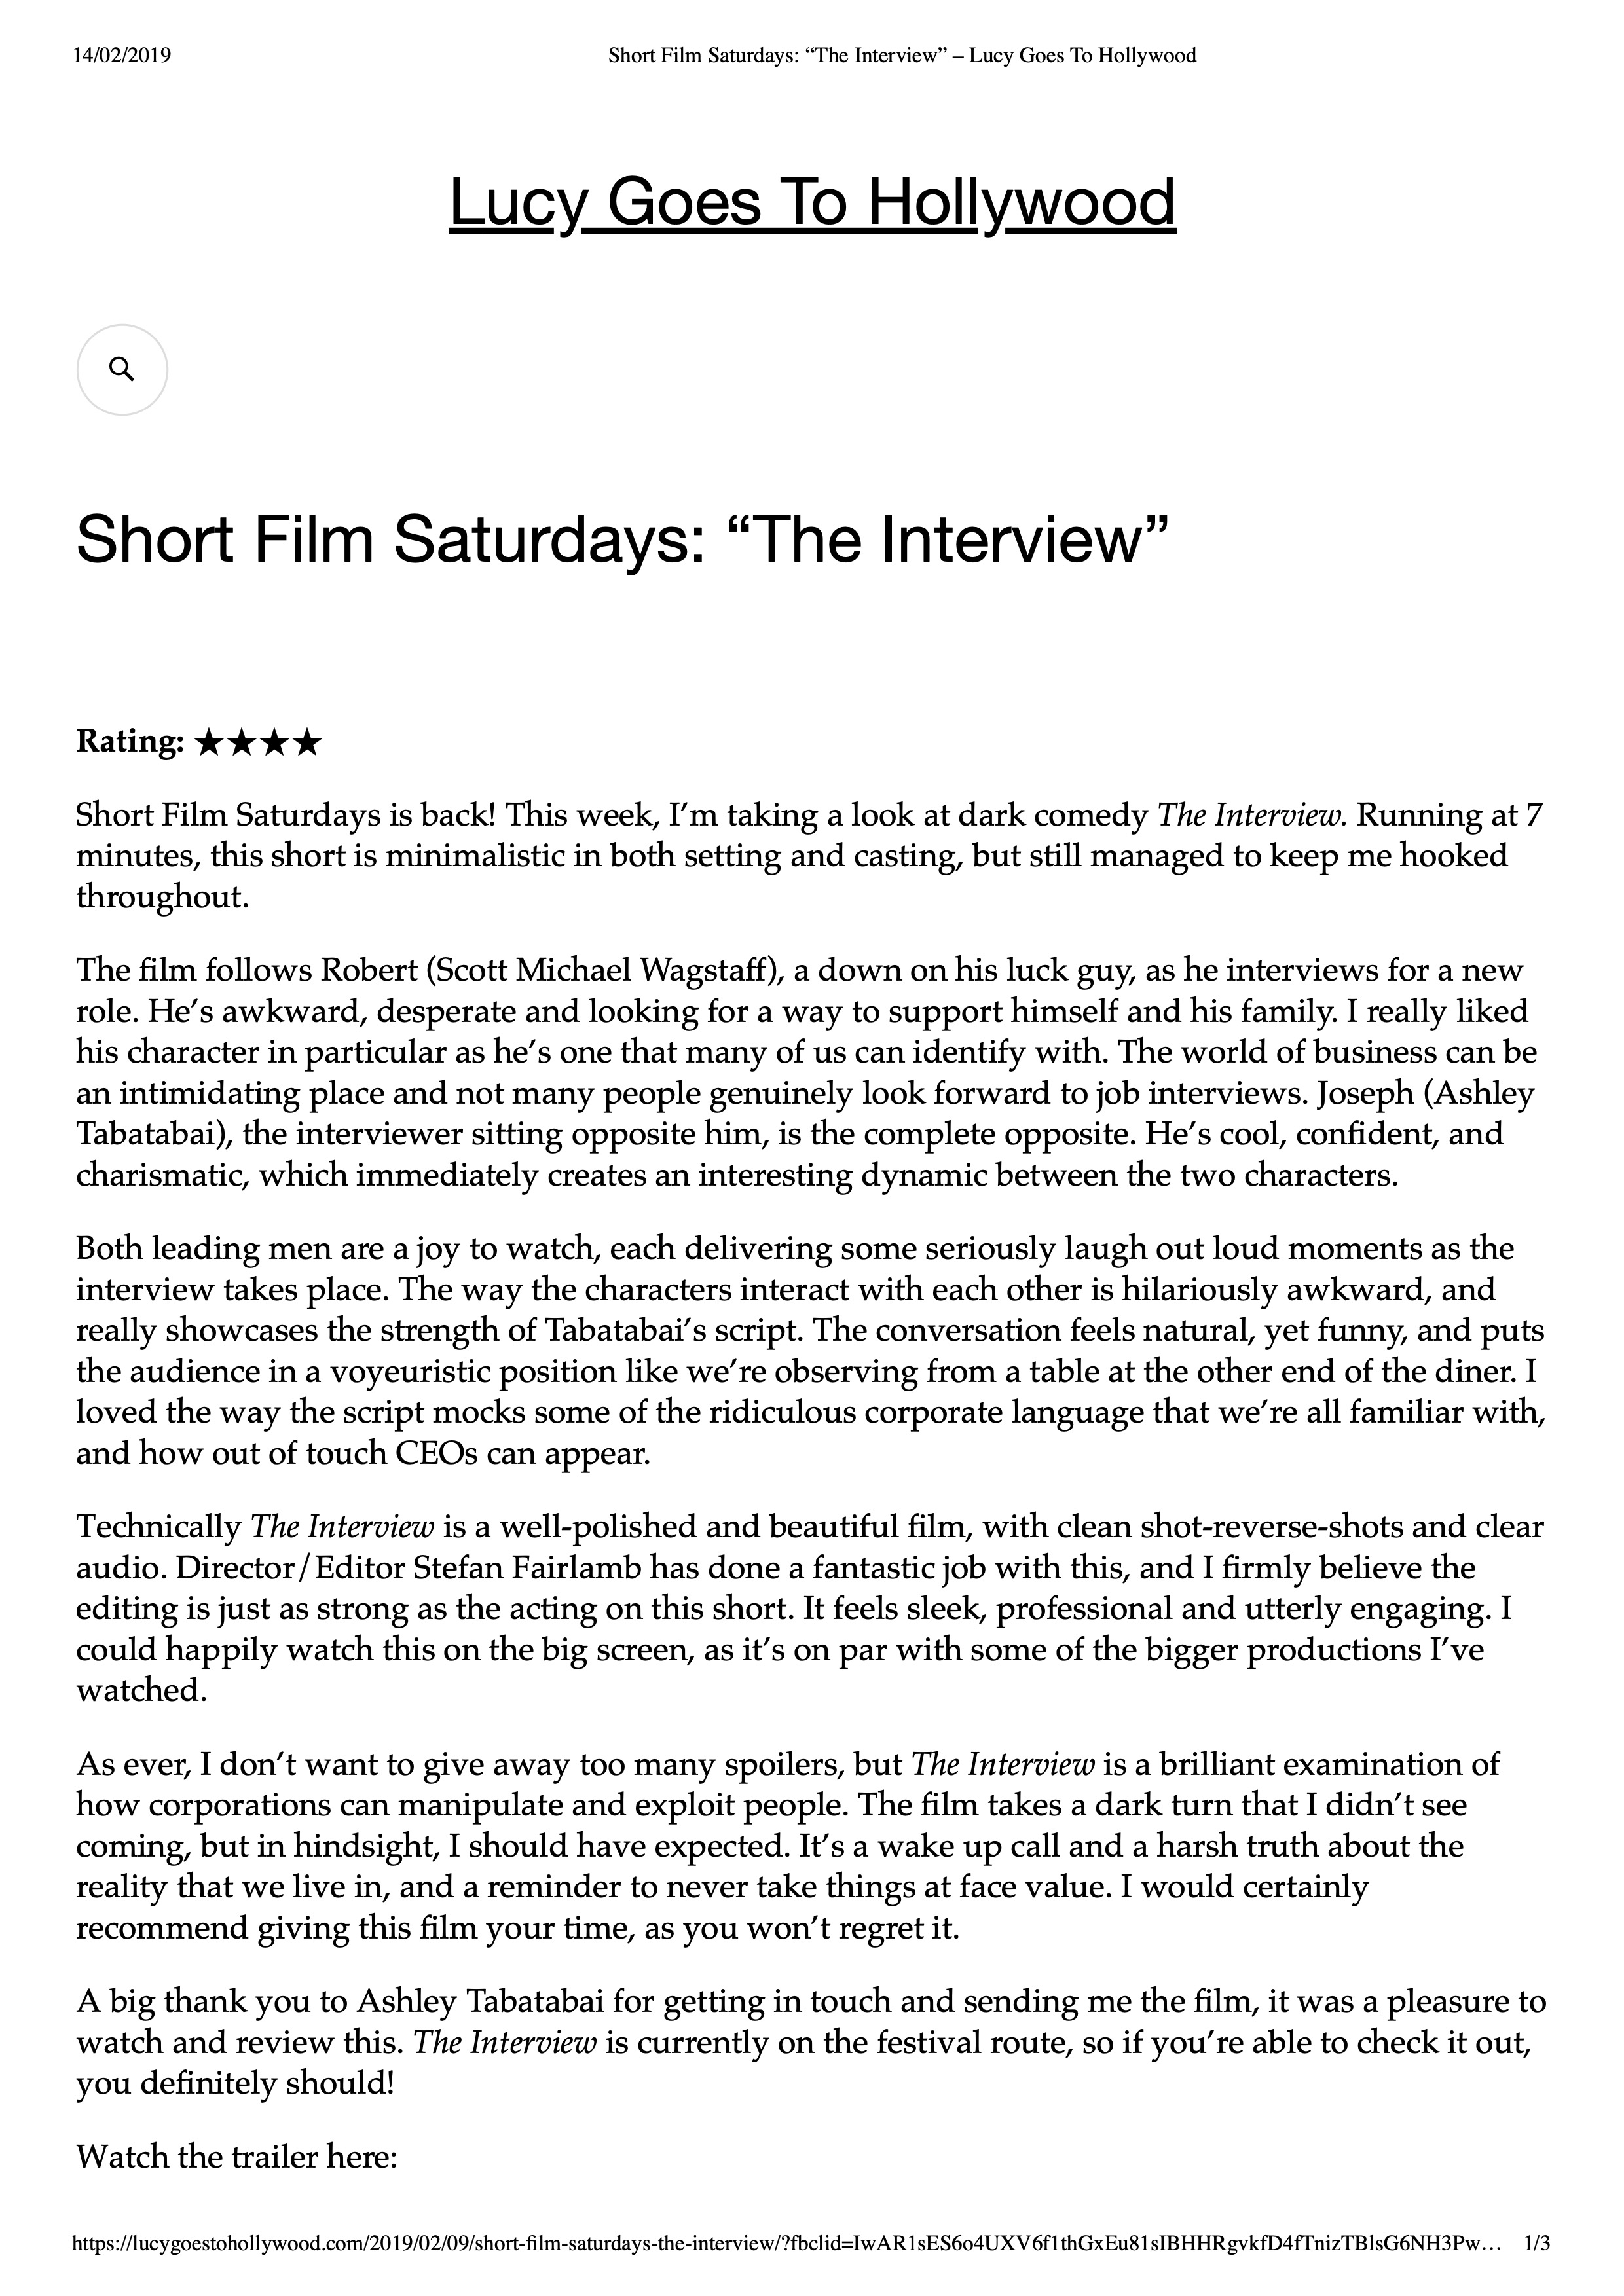 """Short Film Saturdays- """"The Interview"""" – Lucy Goes To Hollywood-1.jpeg"""